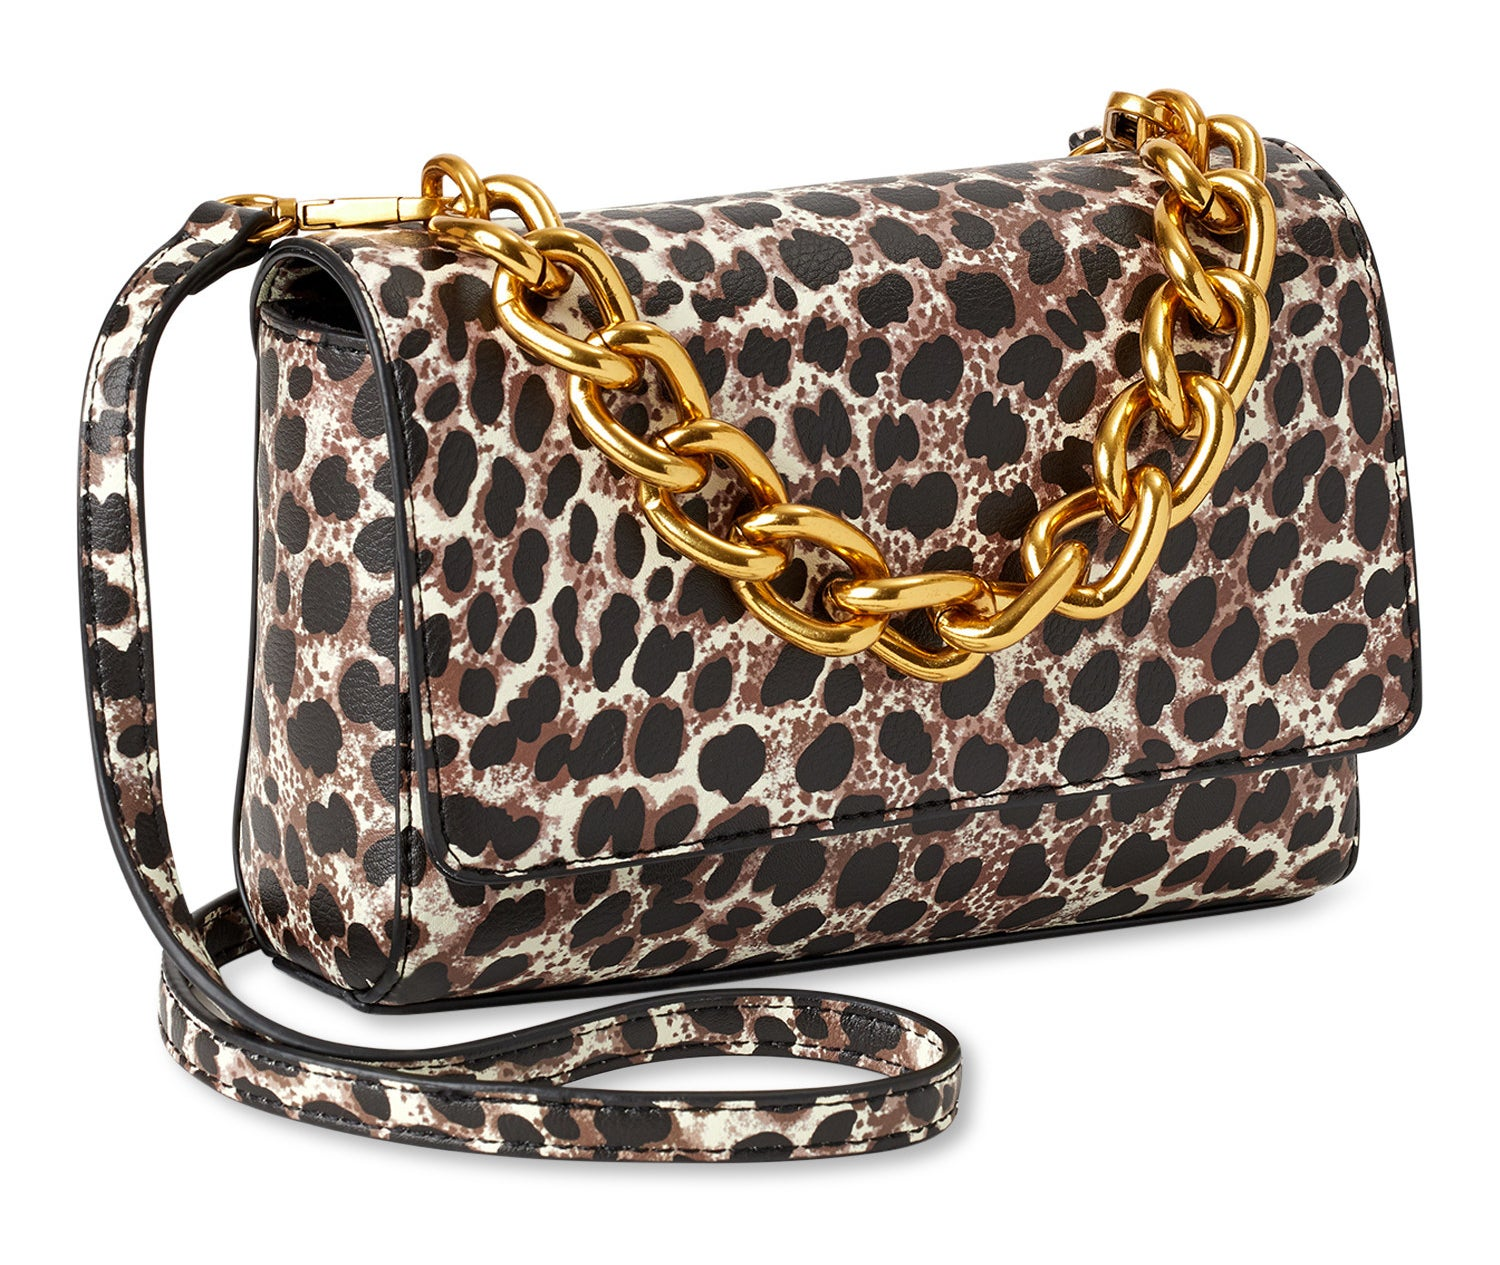 leopard print crossbody bag with a gold chain detail